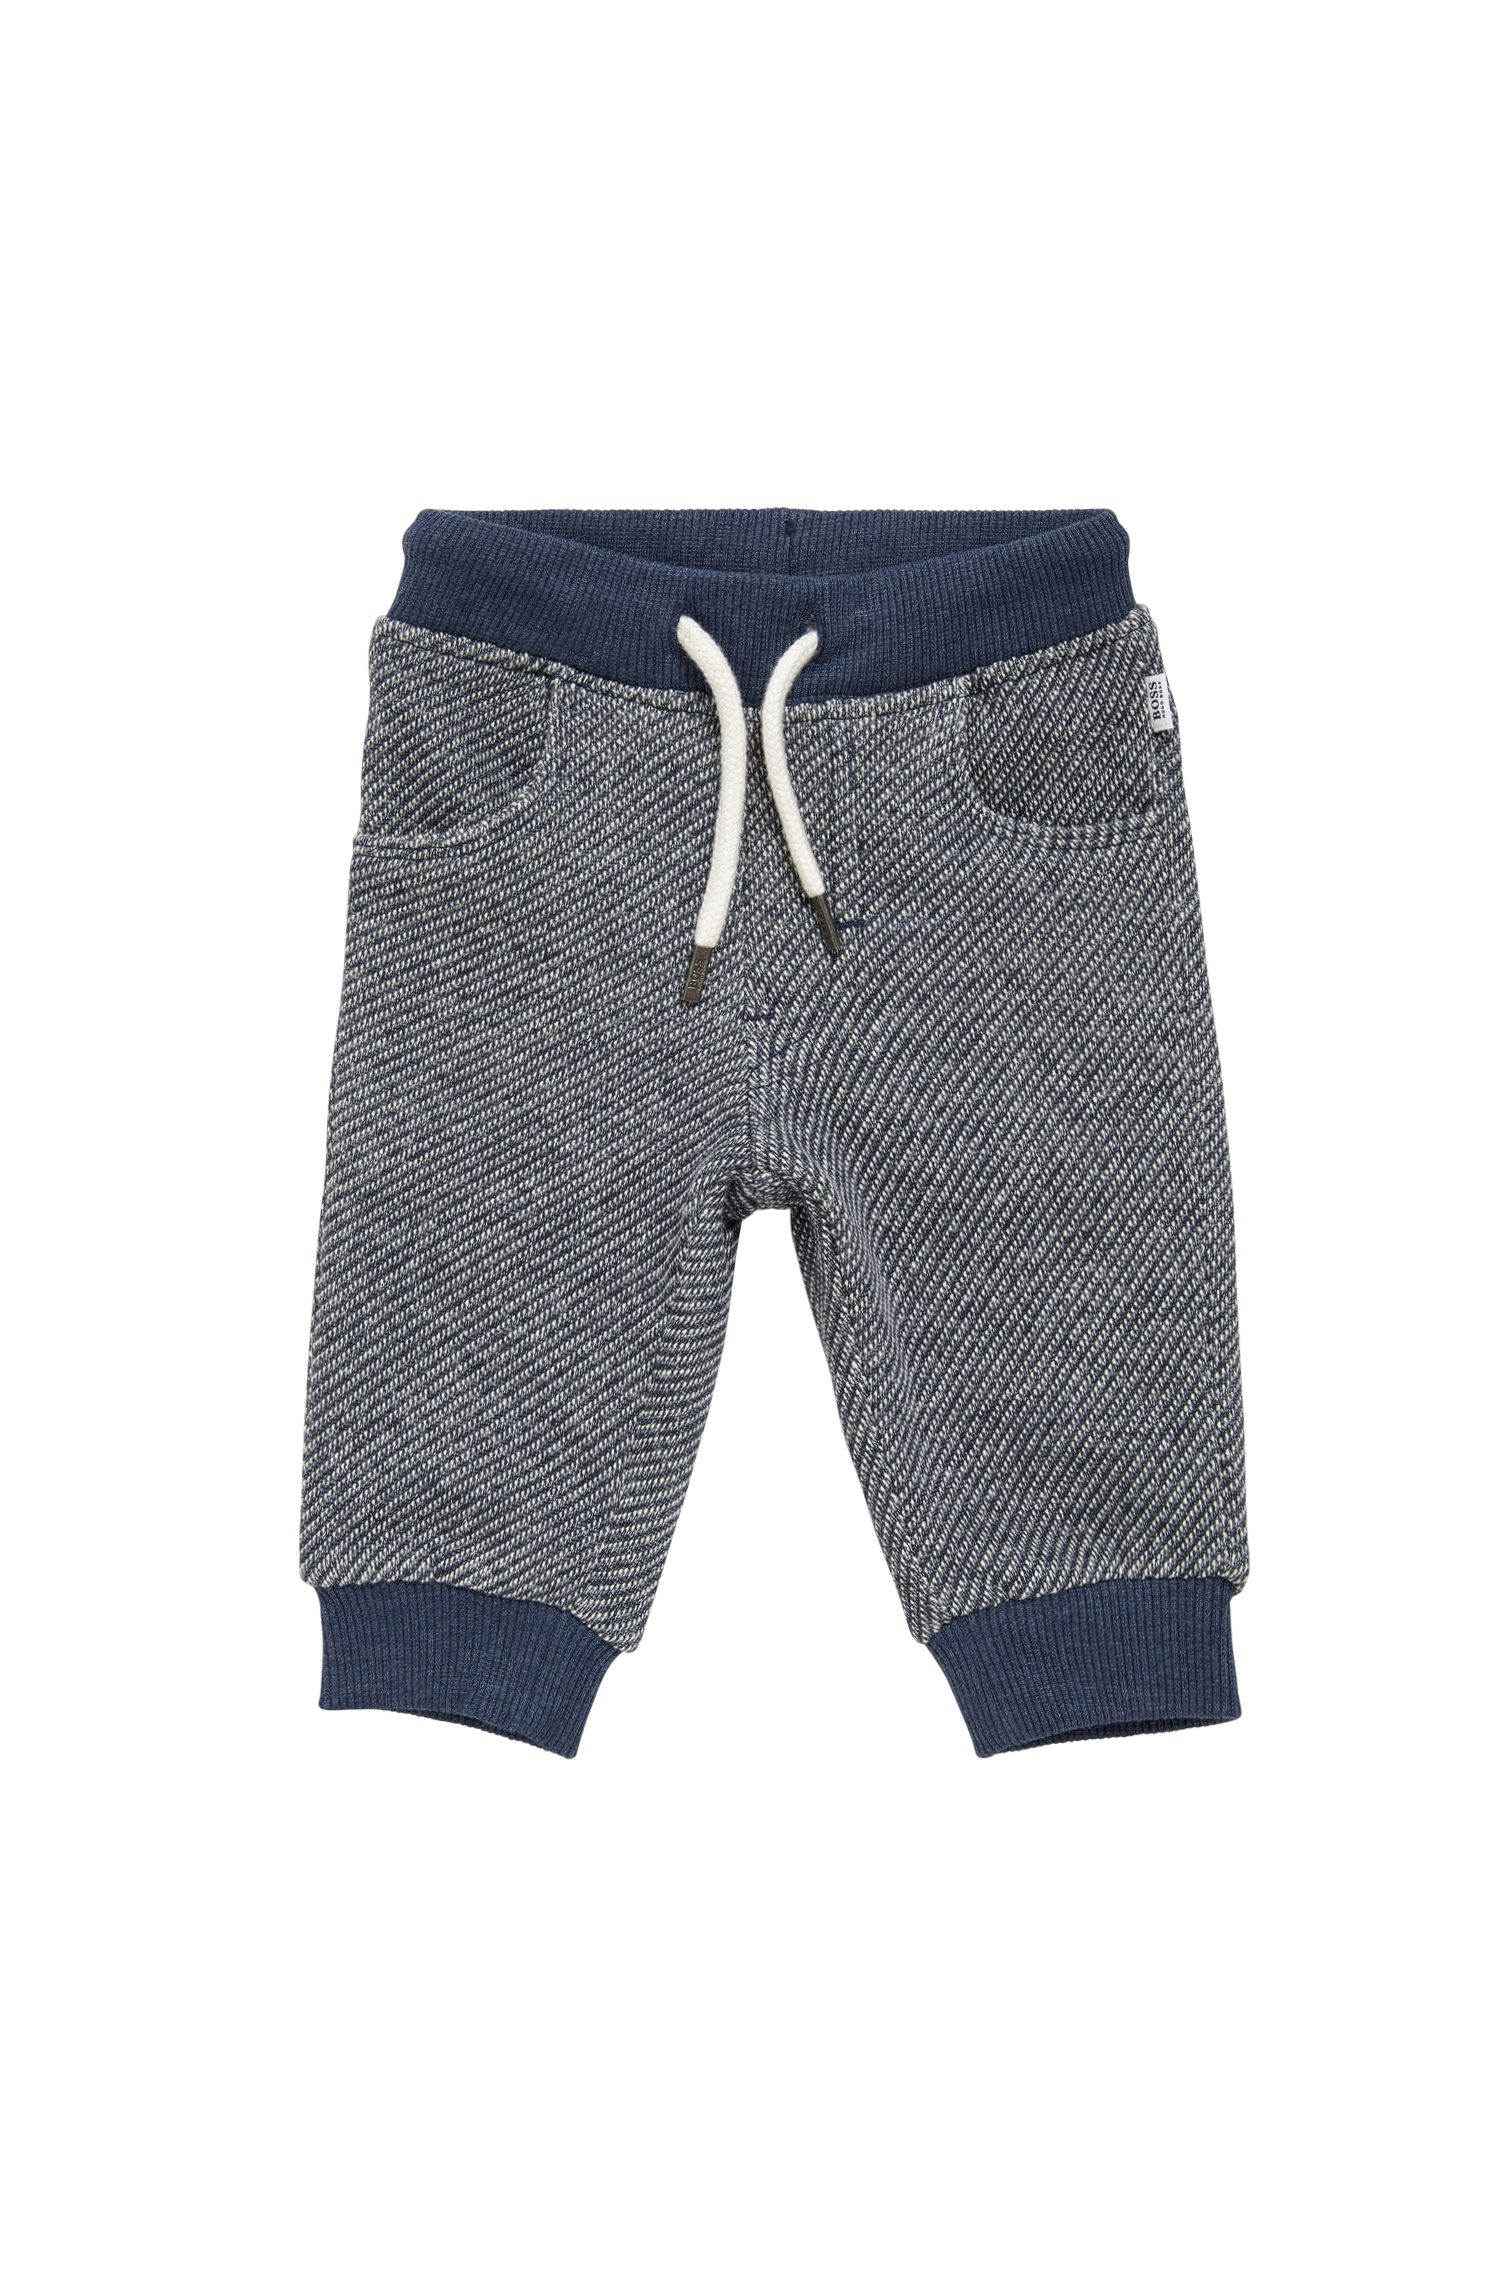 Kids' tracksuit bottoms in cotton with a drawstring waistband: 'J04245'